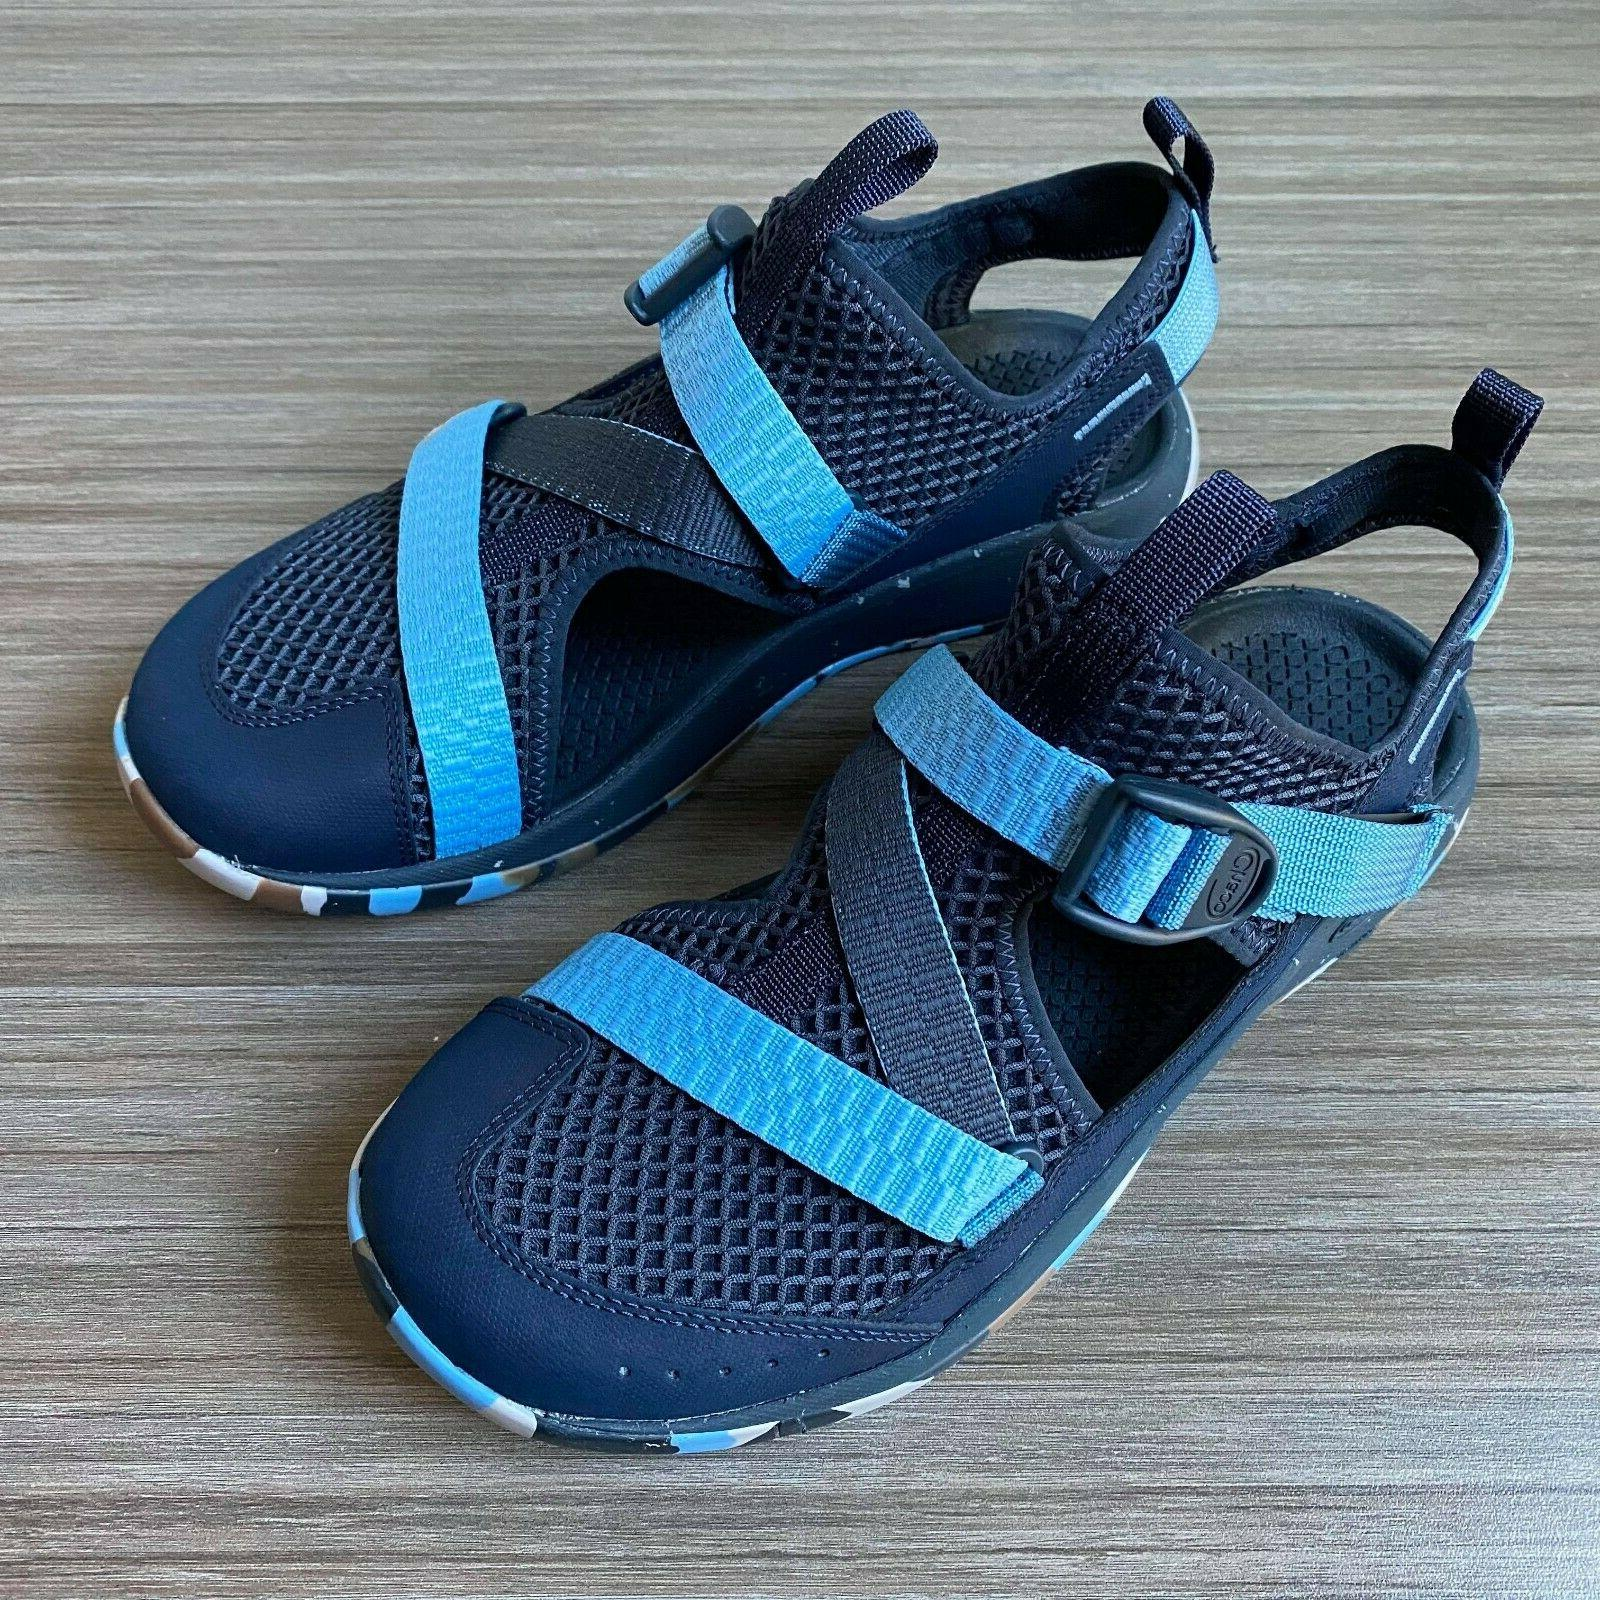 Chaco Water Shoes 9 $100